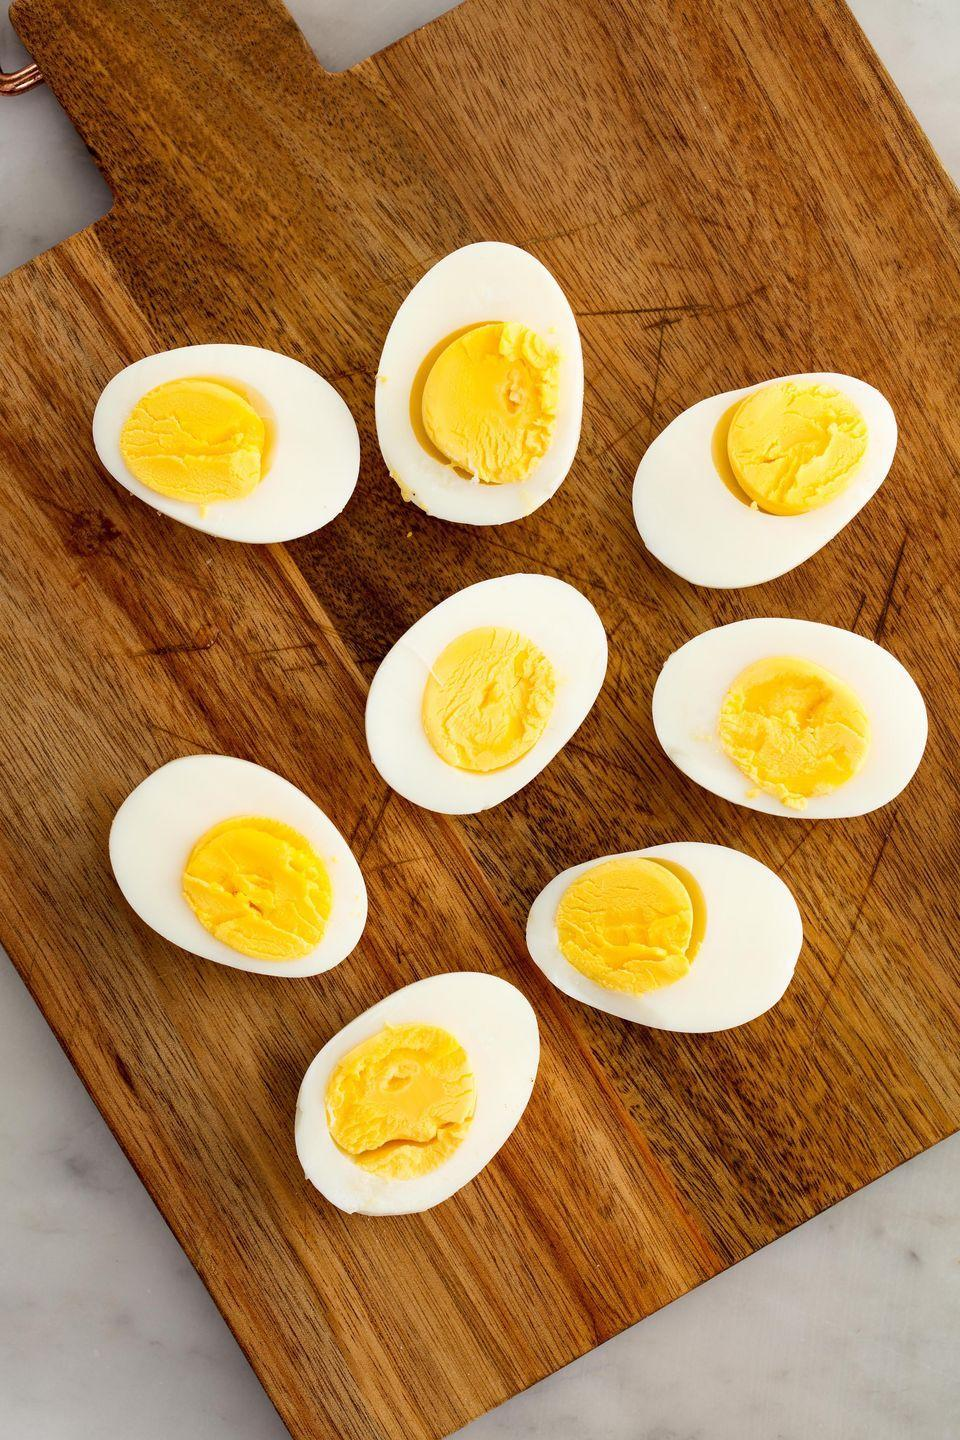 "<p>Everyone should know how to make hard boiled eggs.</p><p>Get the recipe from <a href=""https://www.delish.com/cooking/recipe-ideas/recipes/a58284/how-to-make-perfect-hard-boiled-eggs/?visibilityoverride"" rel=""nofollow noopener"" target=""_blank"" data-ylk=""slk:Delish"" class=""link rapid-noclick-resp"">Delish</a>. </p>"